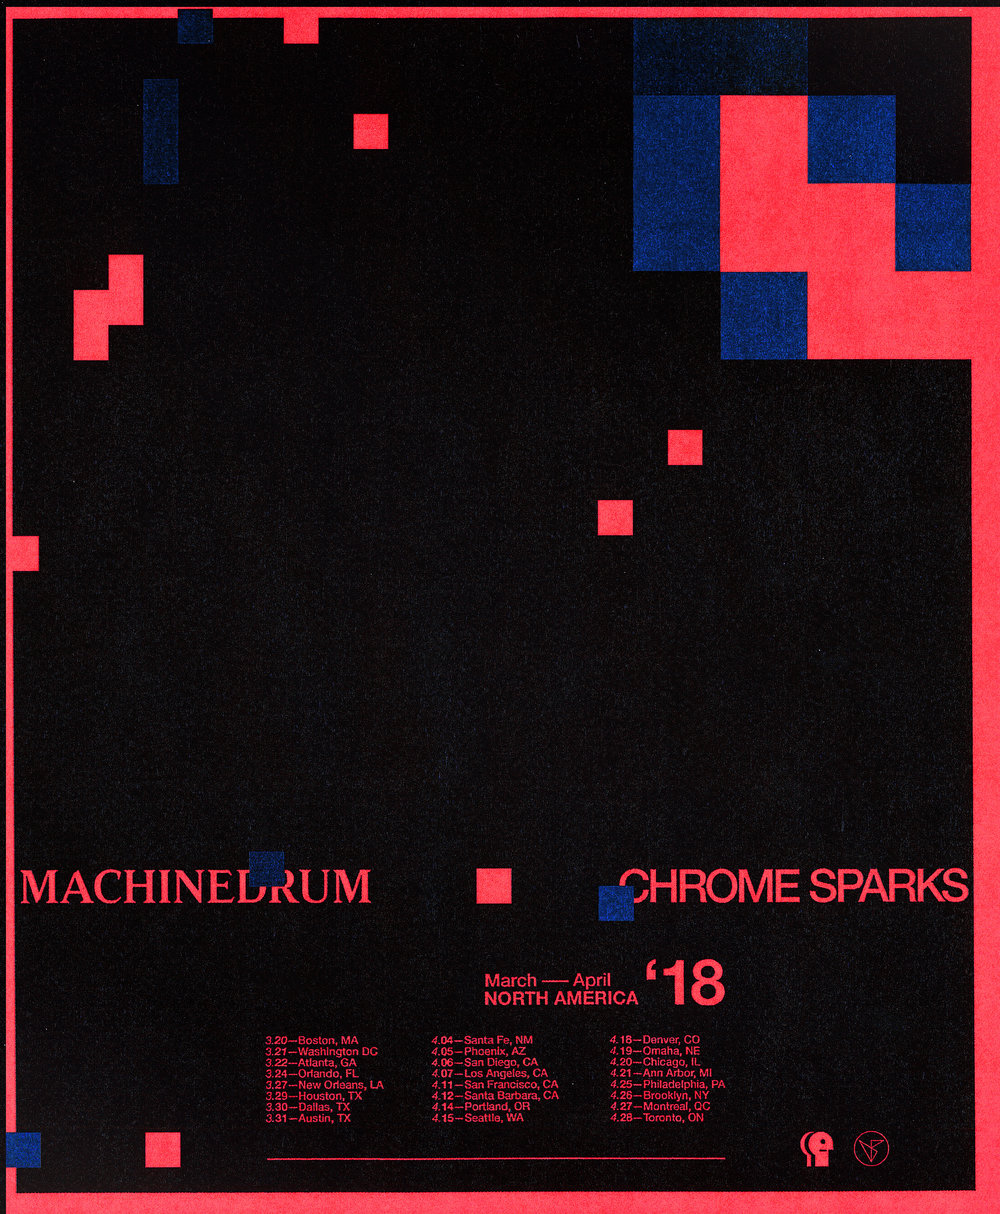 machinedrum-chrome-sparks-na-tour-dark-blank-web_2500.jpg